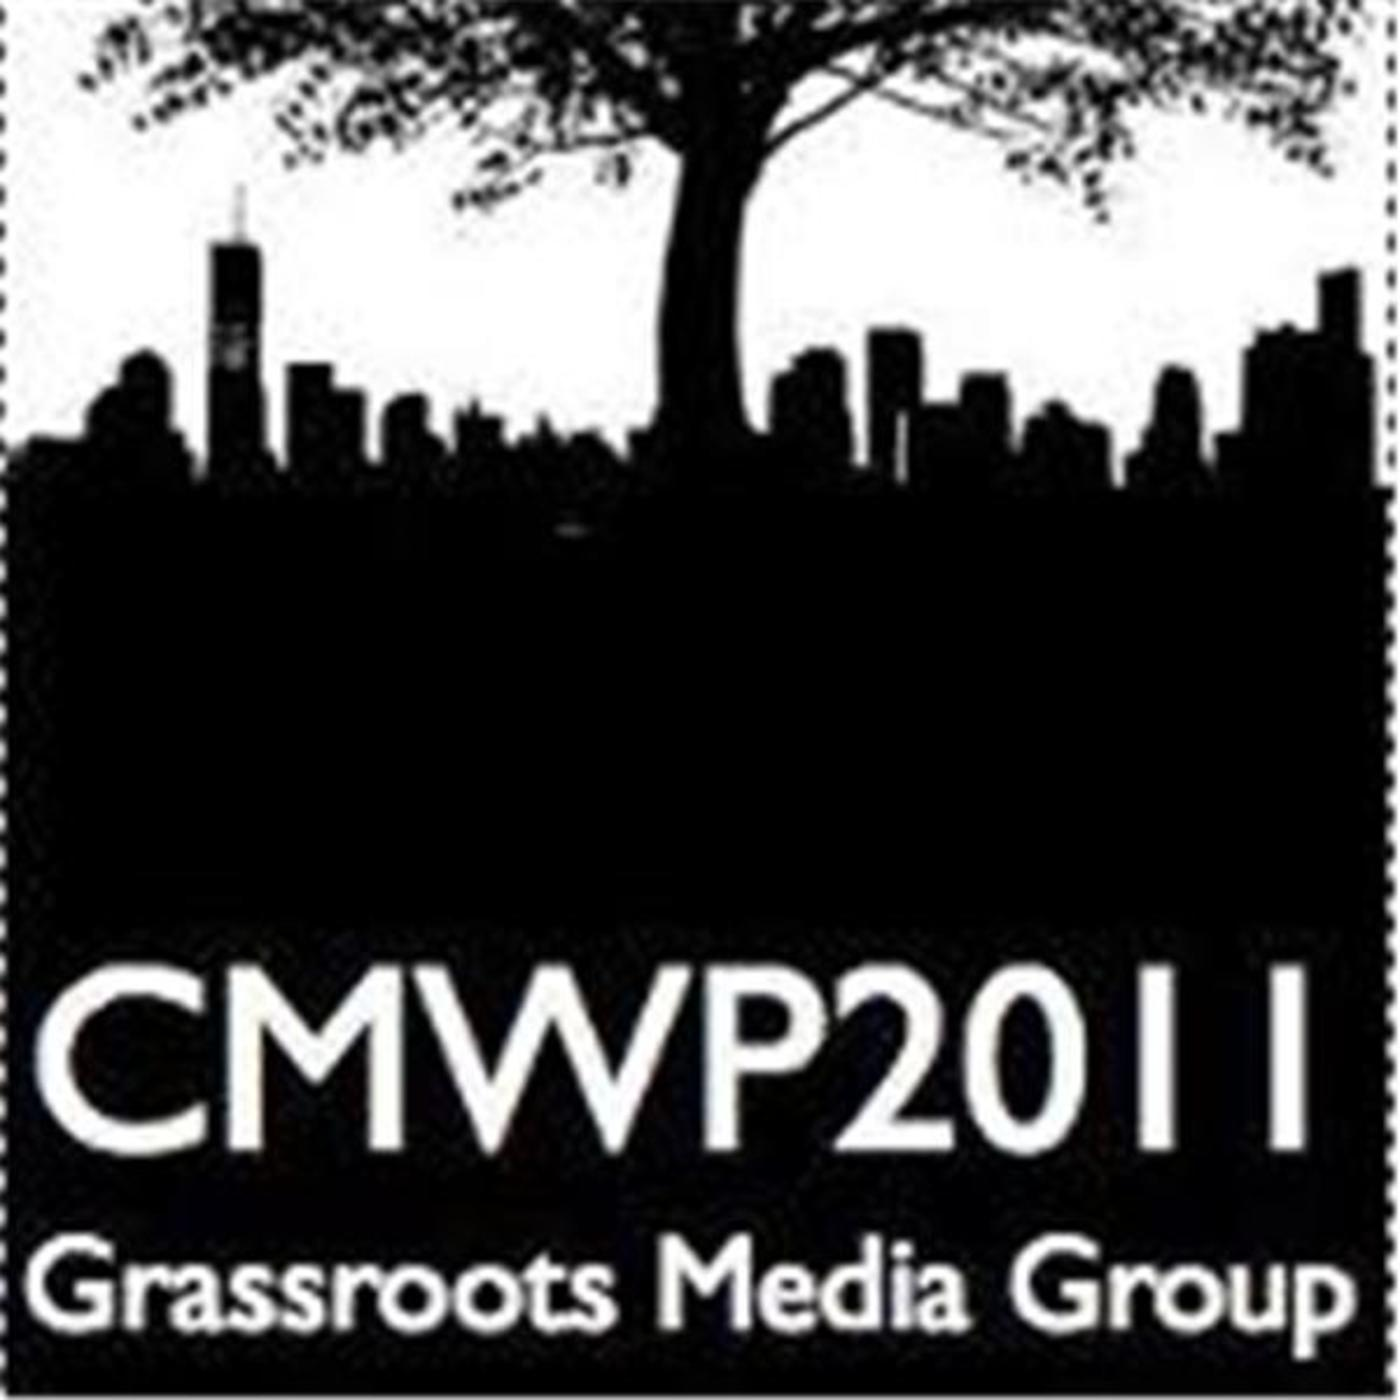 CMWP2011: Grassroots Media Group